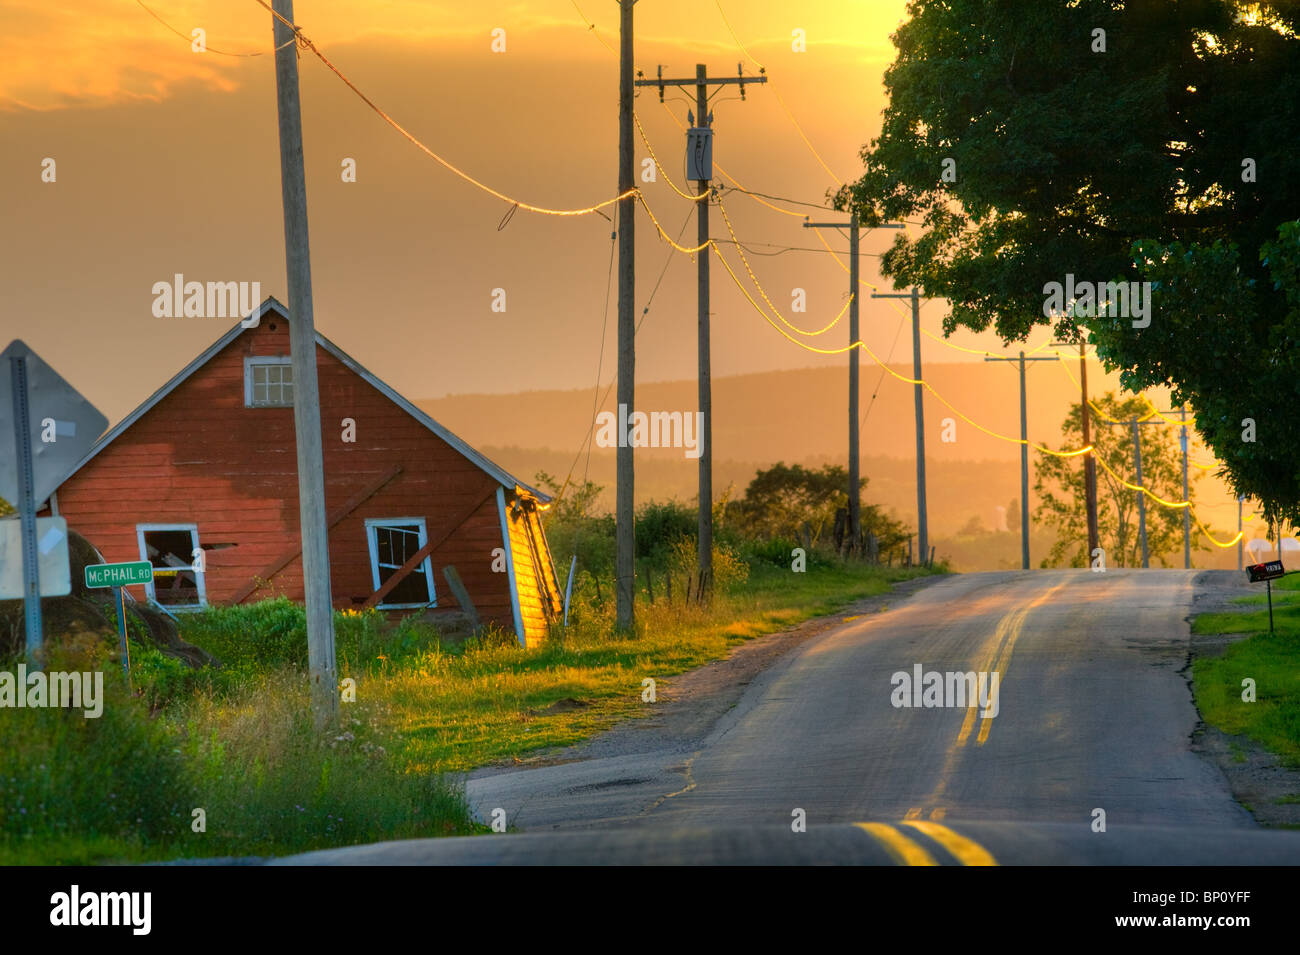 Golden sunset country road, leaning barn, upstate New York - Stock Image